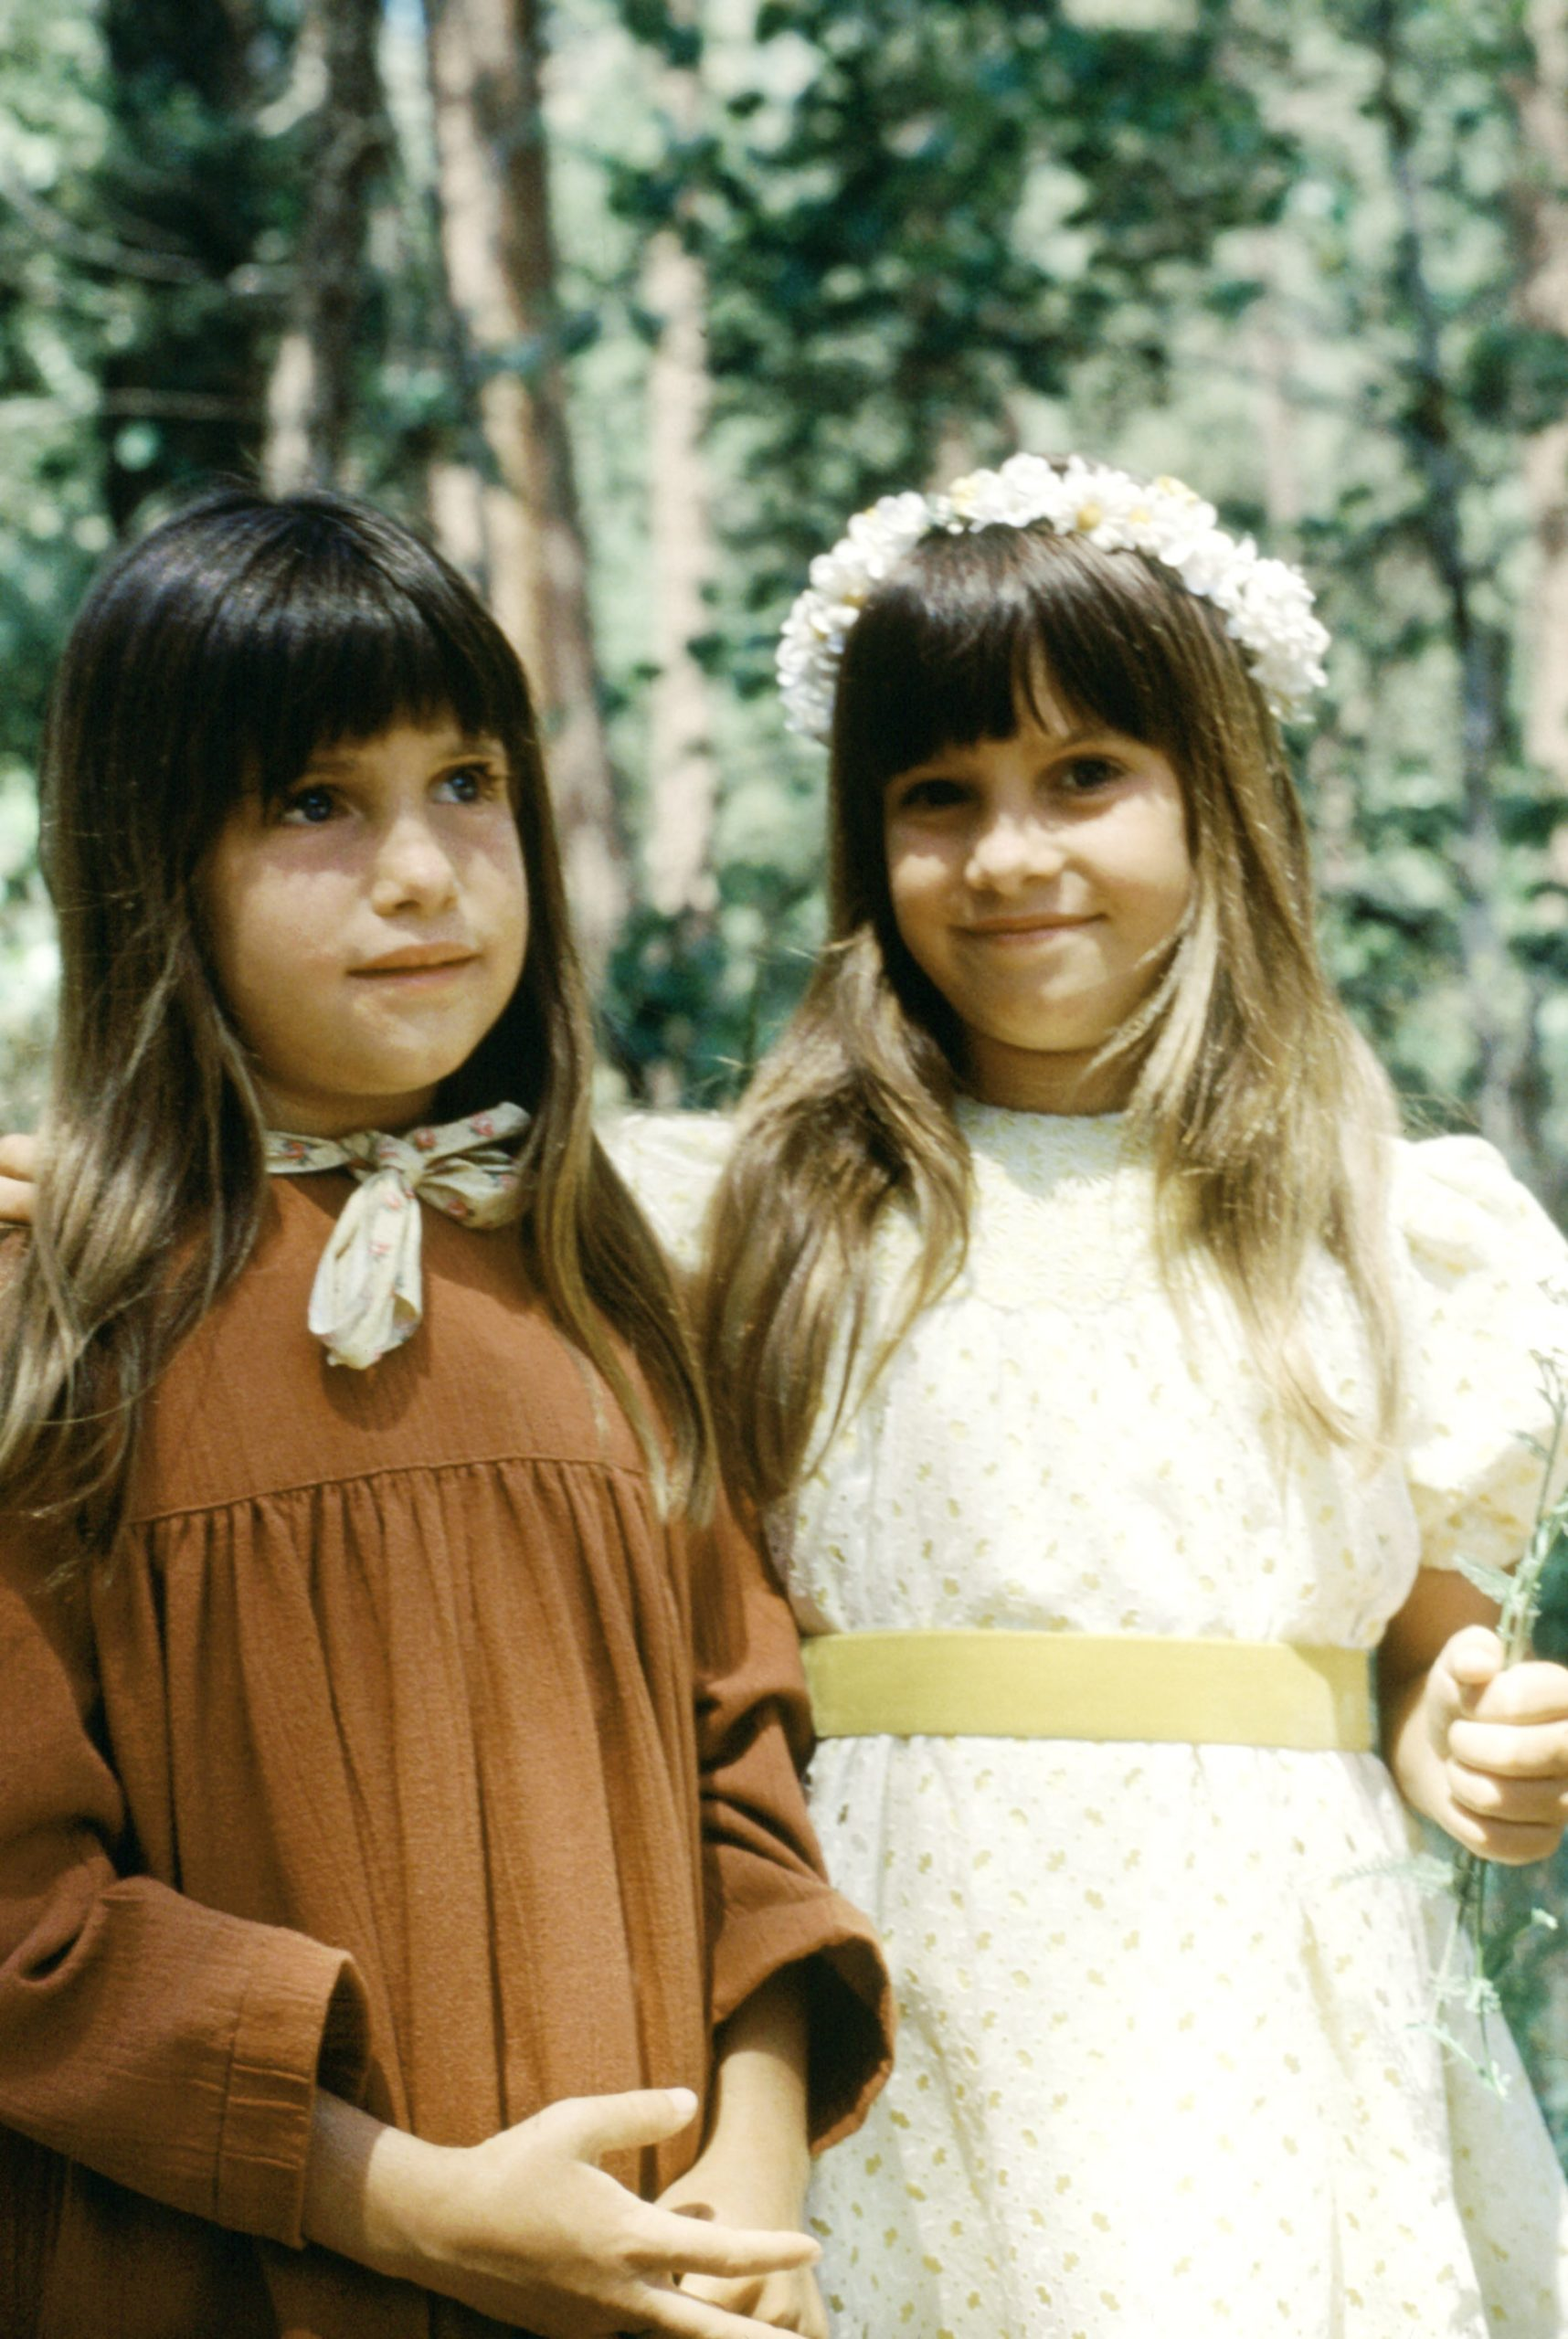 Sometimes, viewers could see subtle differences based on who played Carrie Ingalls